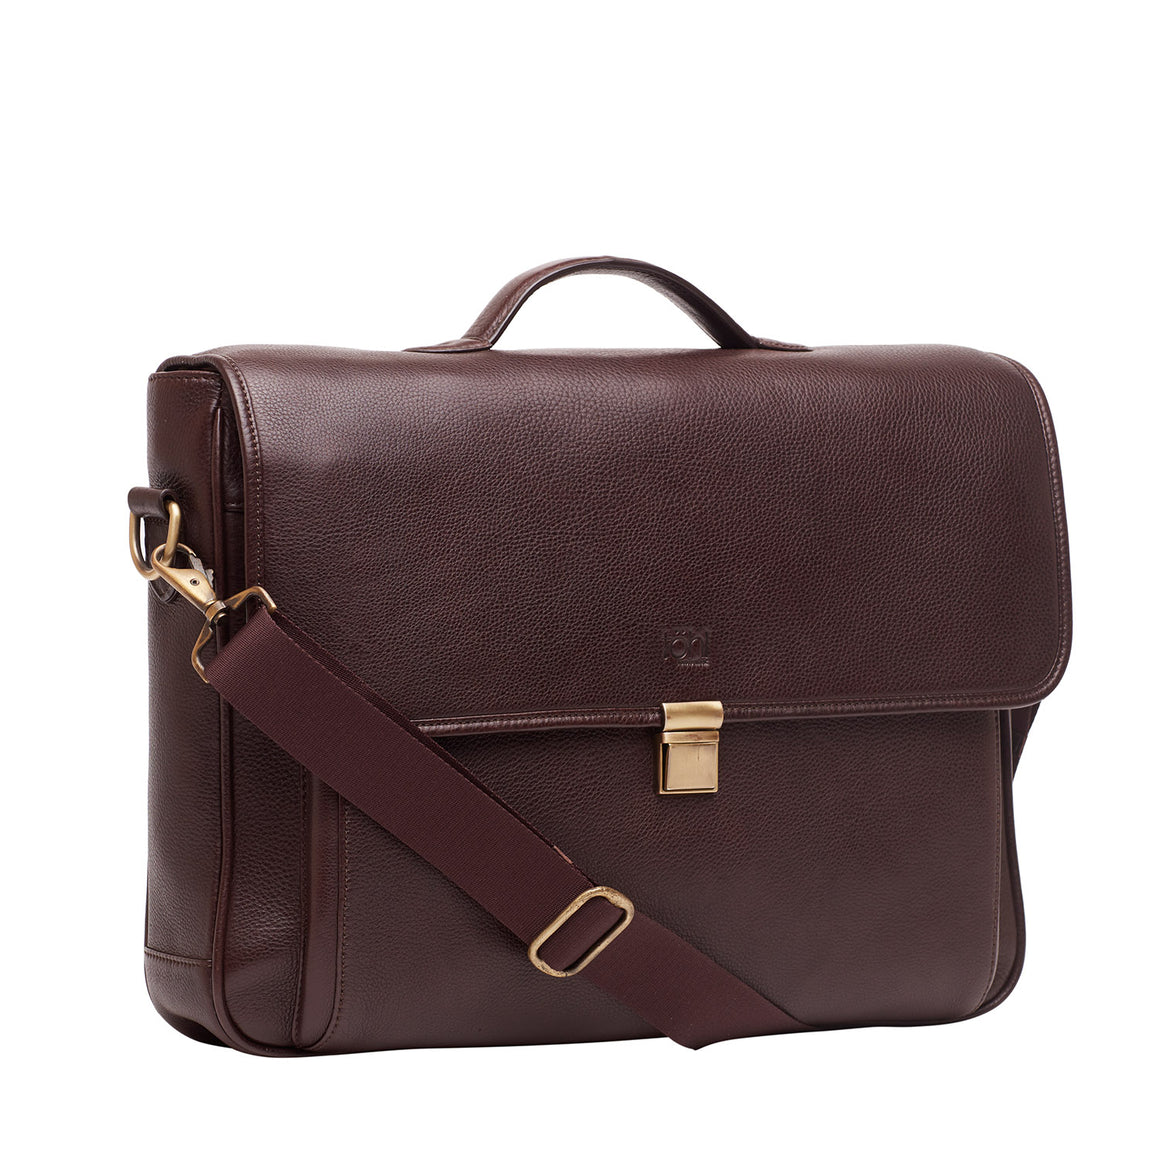 VS 0001 - TOHL VARONA MEN'S VALISES & SATCHELS - T MORO